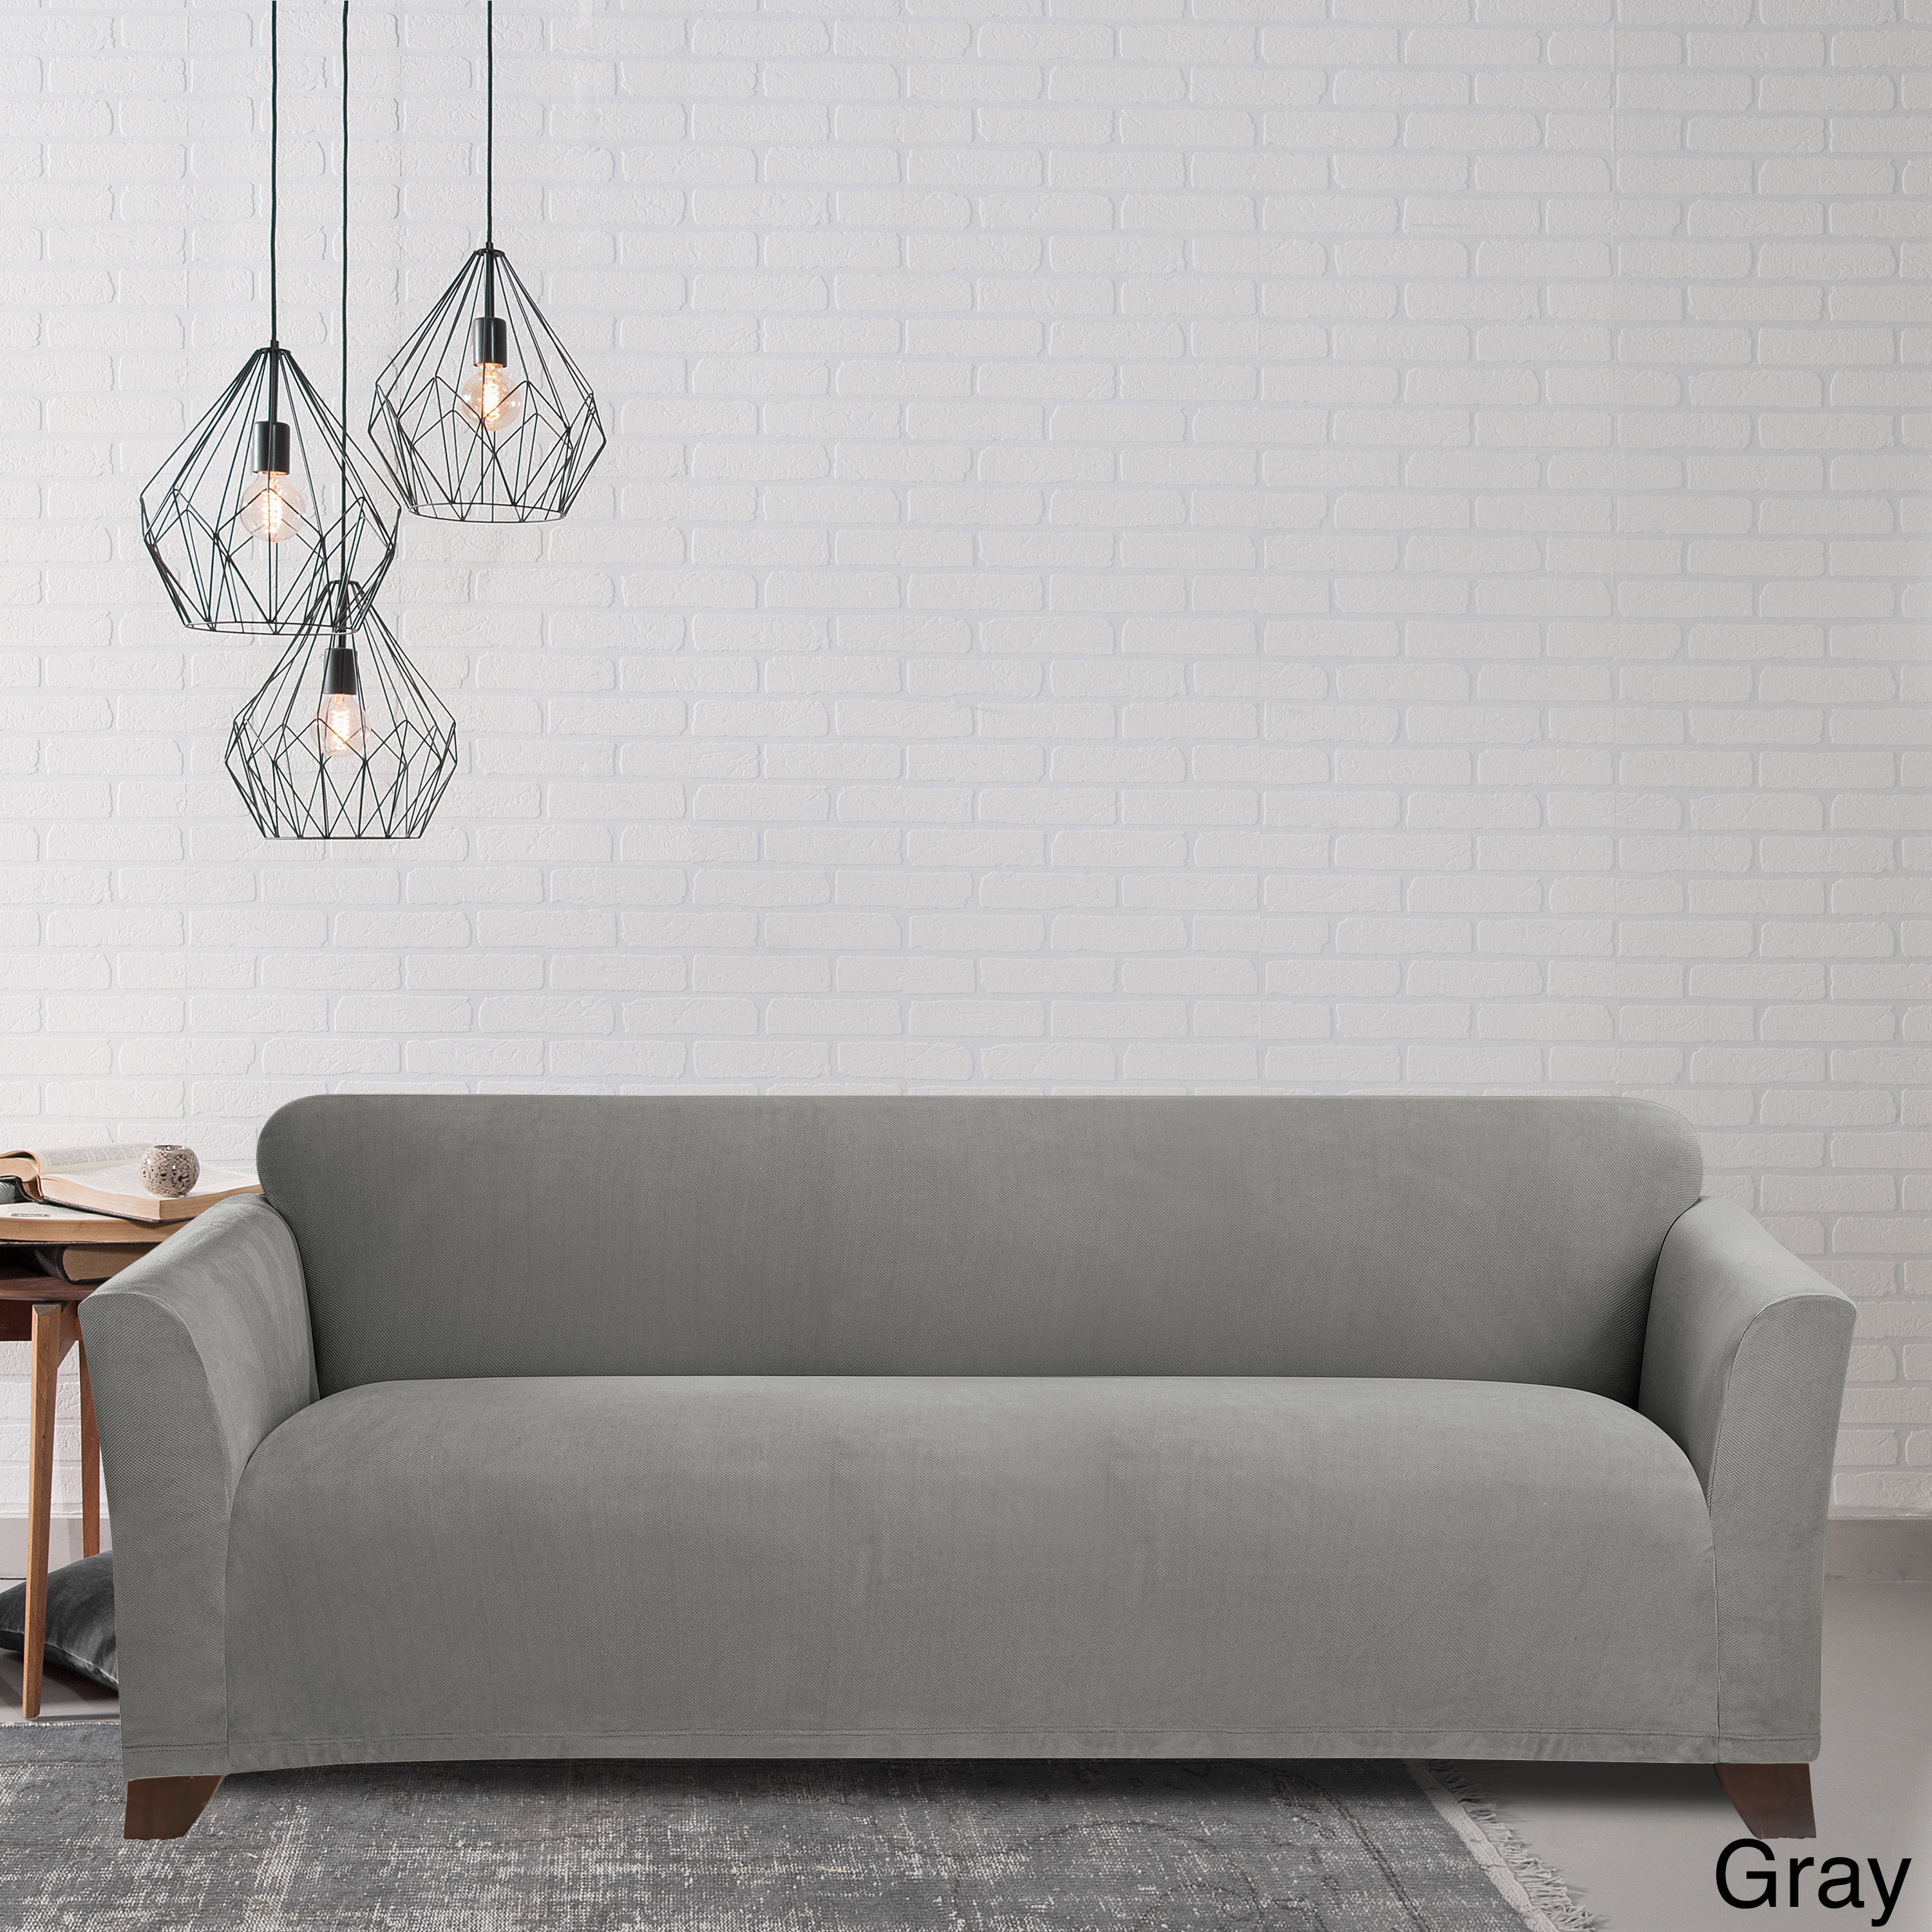 stretch morgan 1 piece sofa furniture cover j m paquet grey & couch slipcovers for less | overstock.com